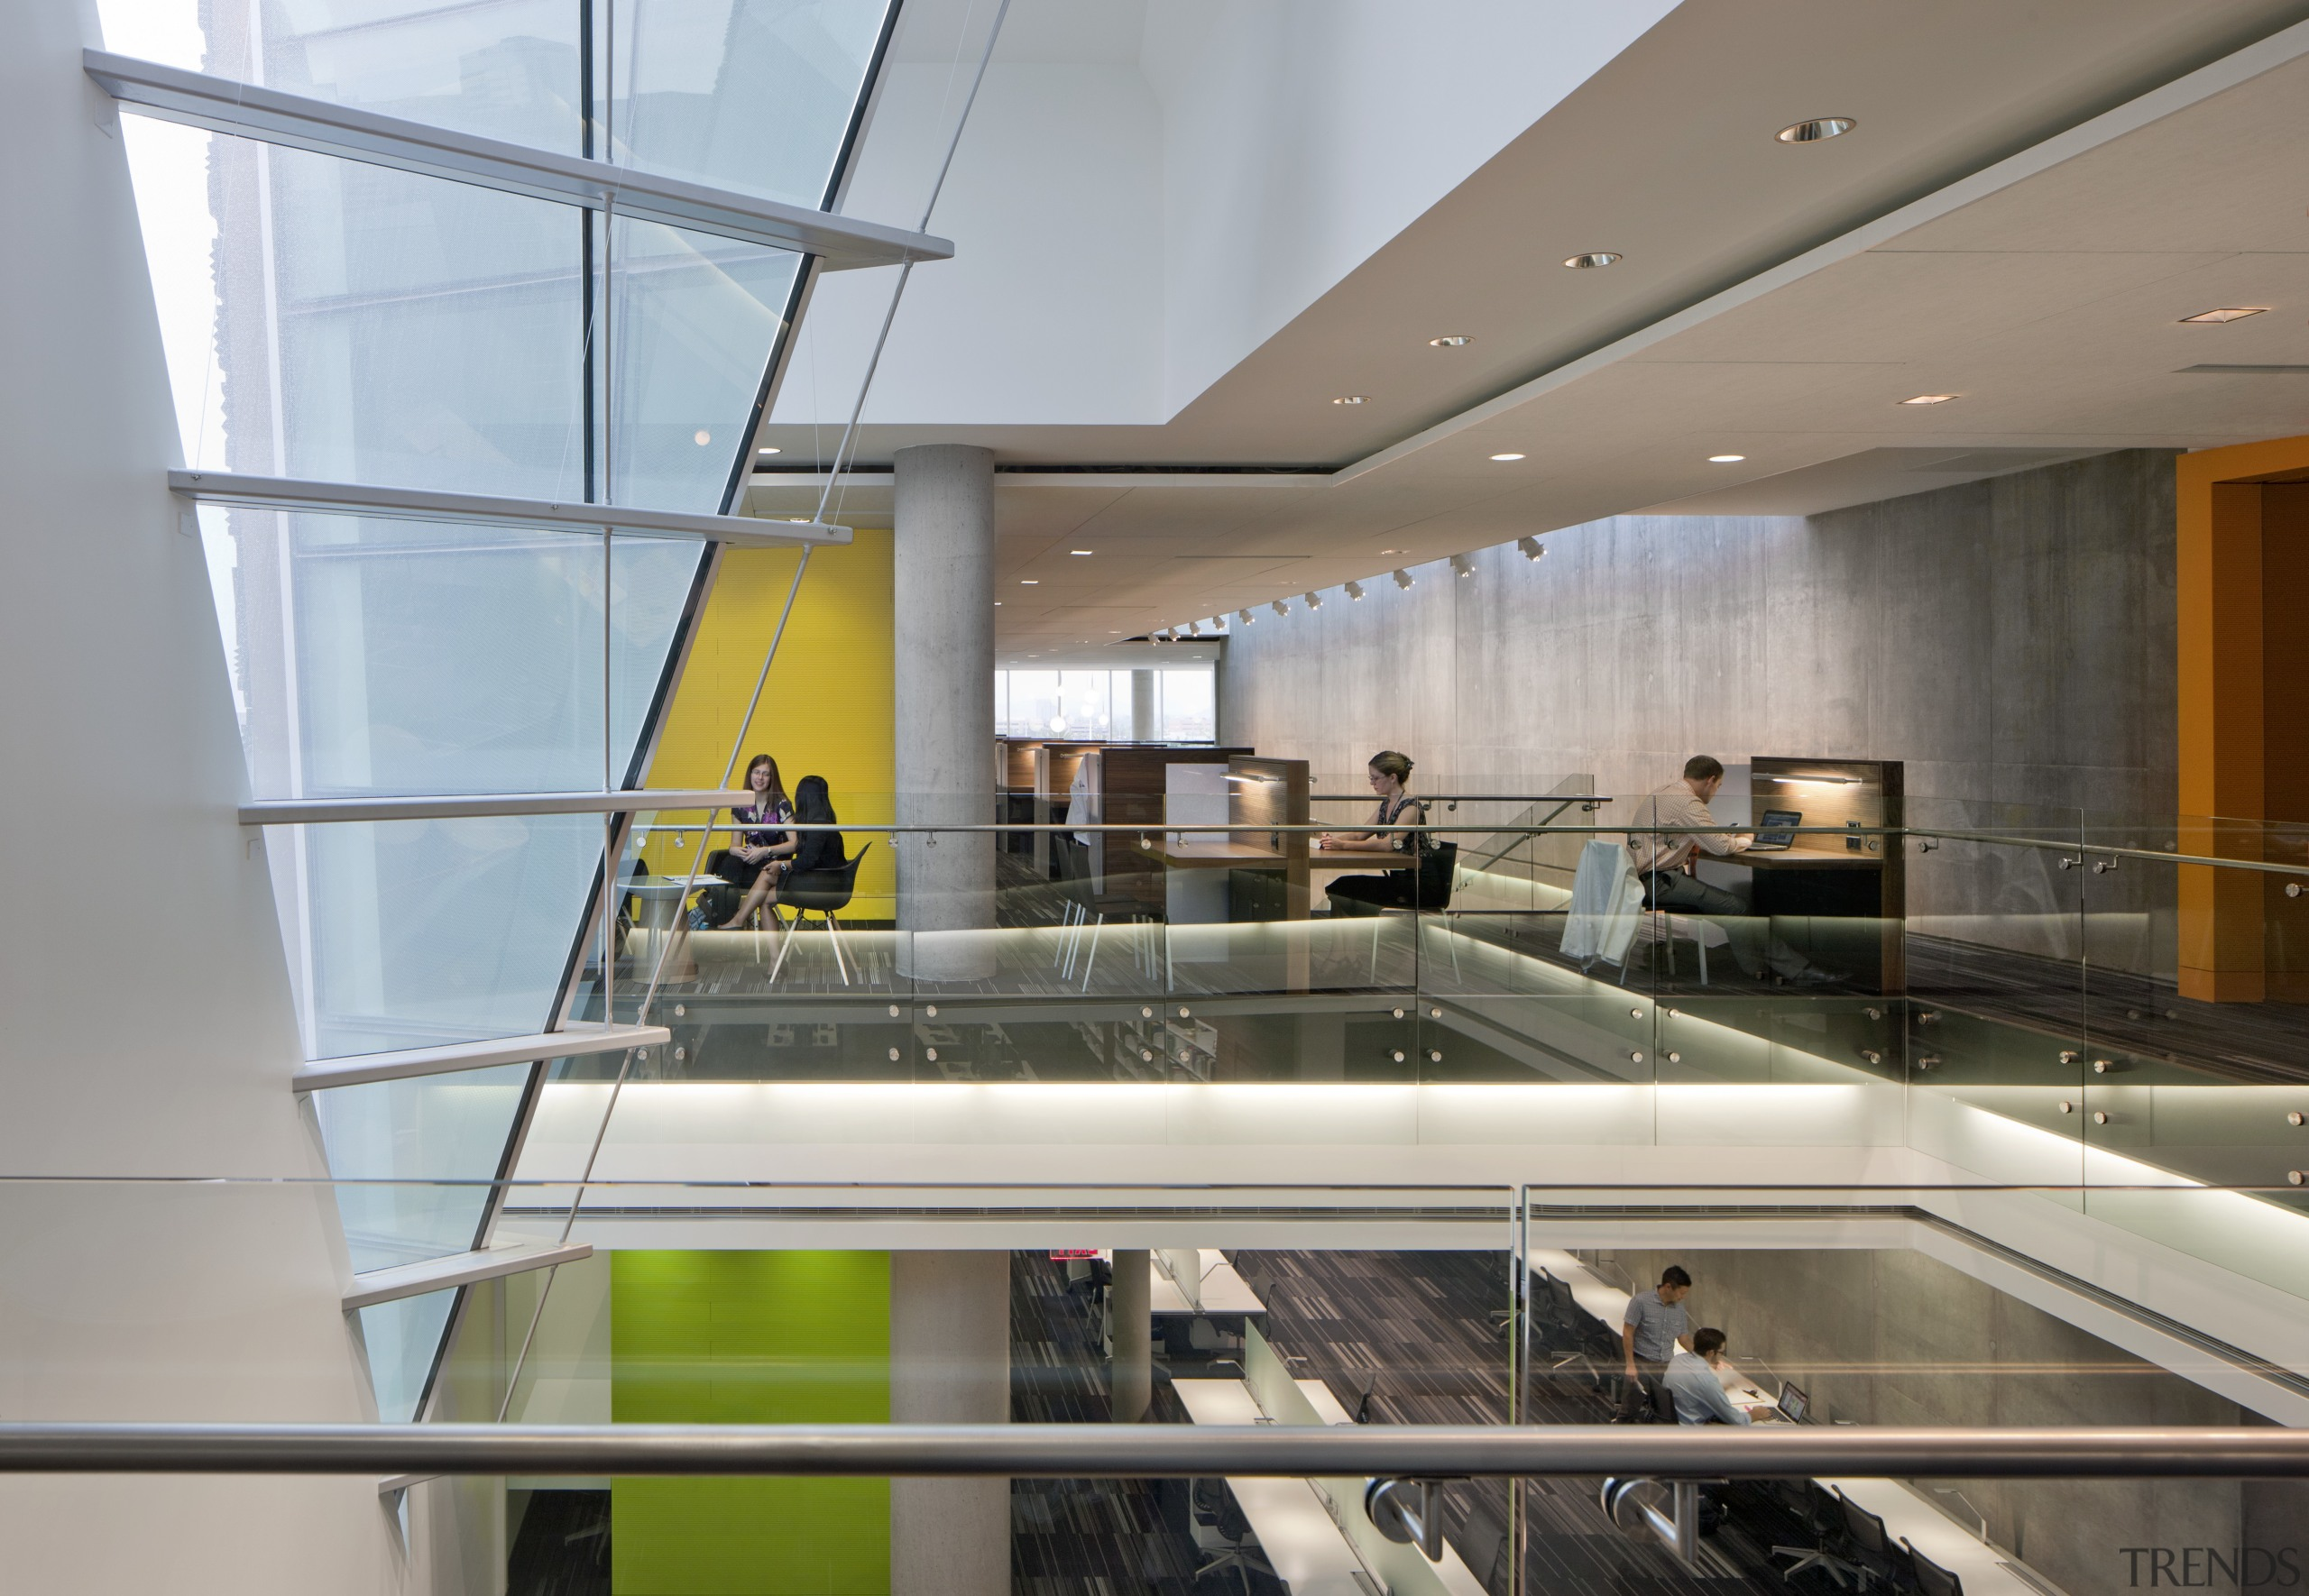 On the Health Sciences Education Building project, the architecture, glass, interior design, gray